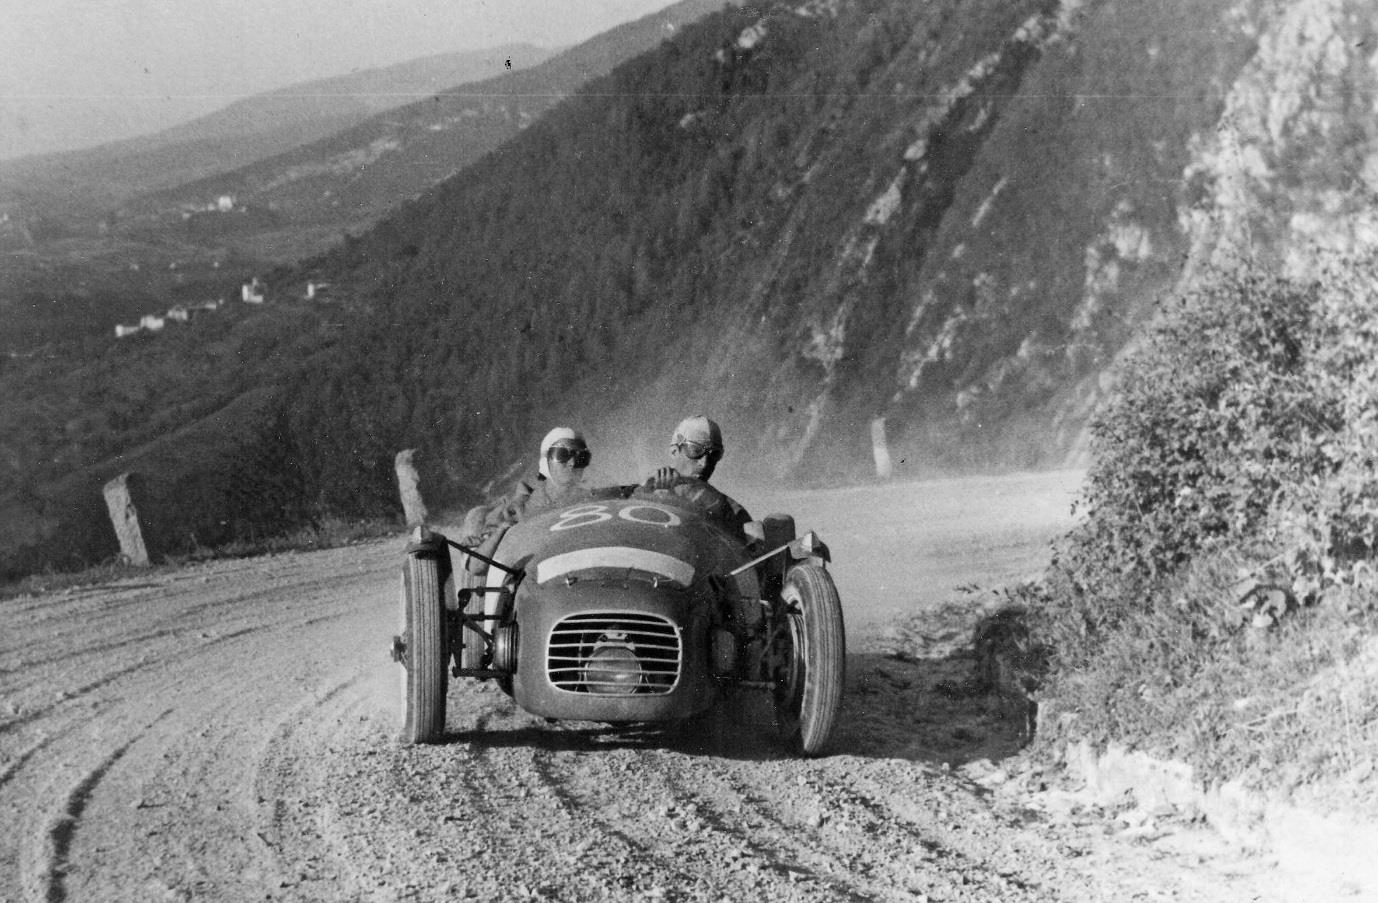 Driving the Urania-BMW  – powered by a BMW motor cycle engine – on the 1949 Stella Alpina event